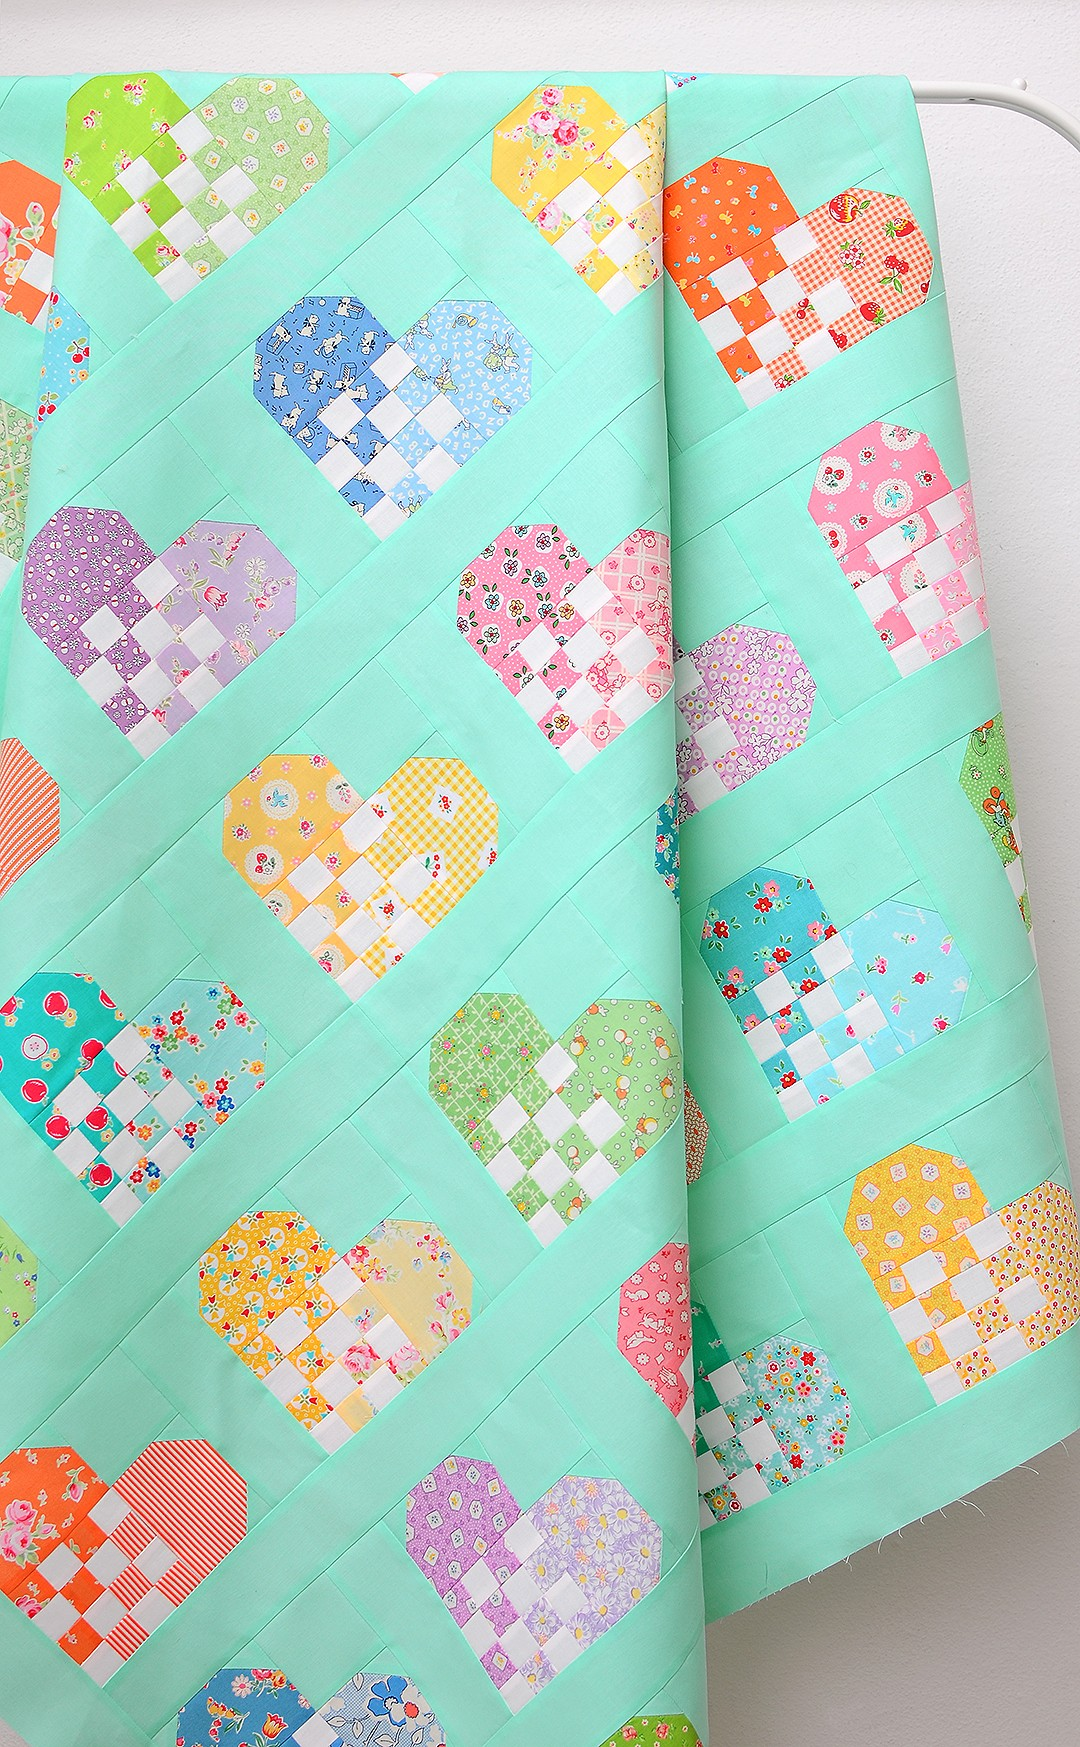 Checkered Heart Quilt - a free quilt pattern and tutorial